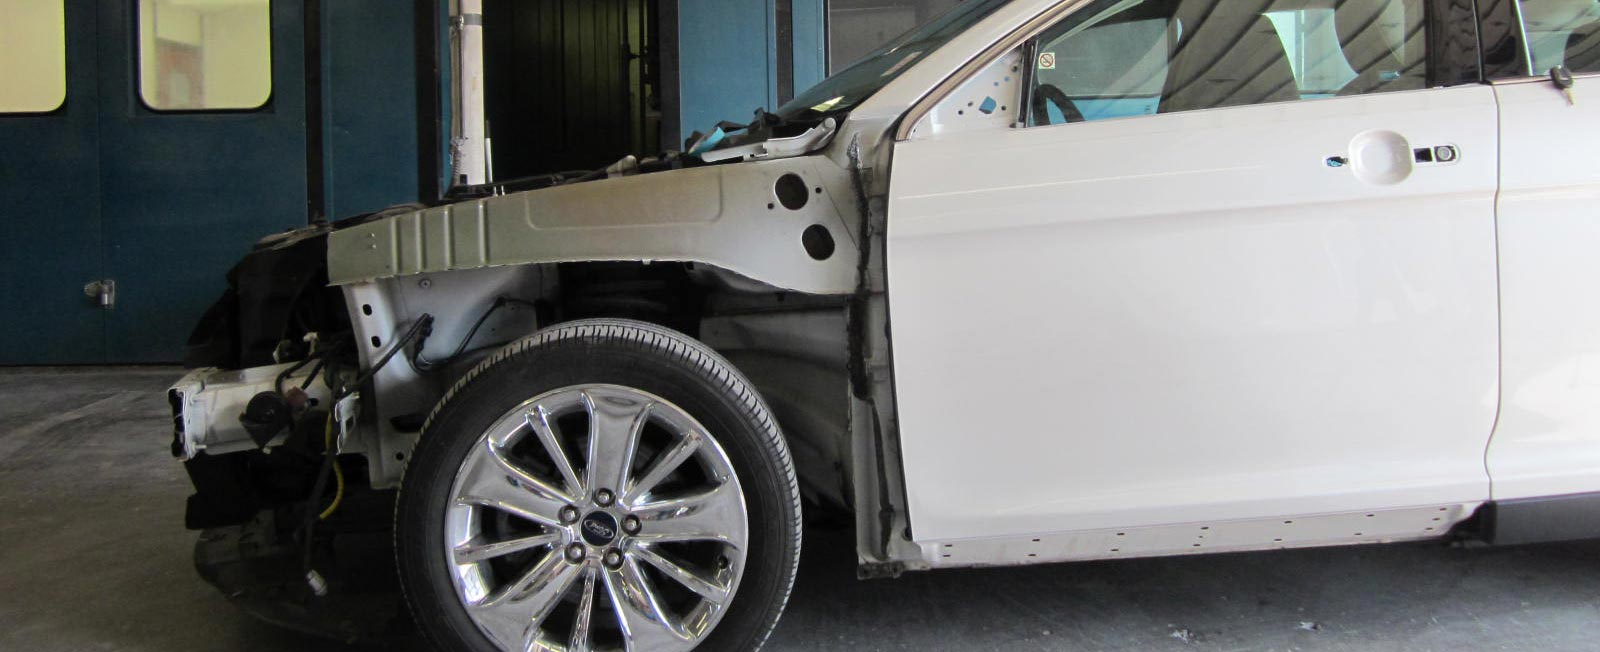 Tri City Auto | Collision Repair | St. Charles, IL